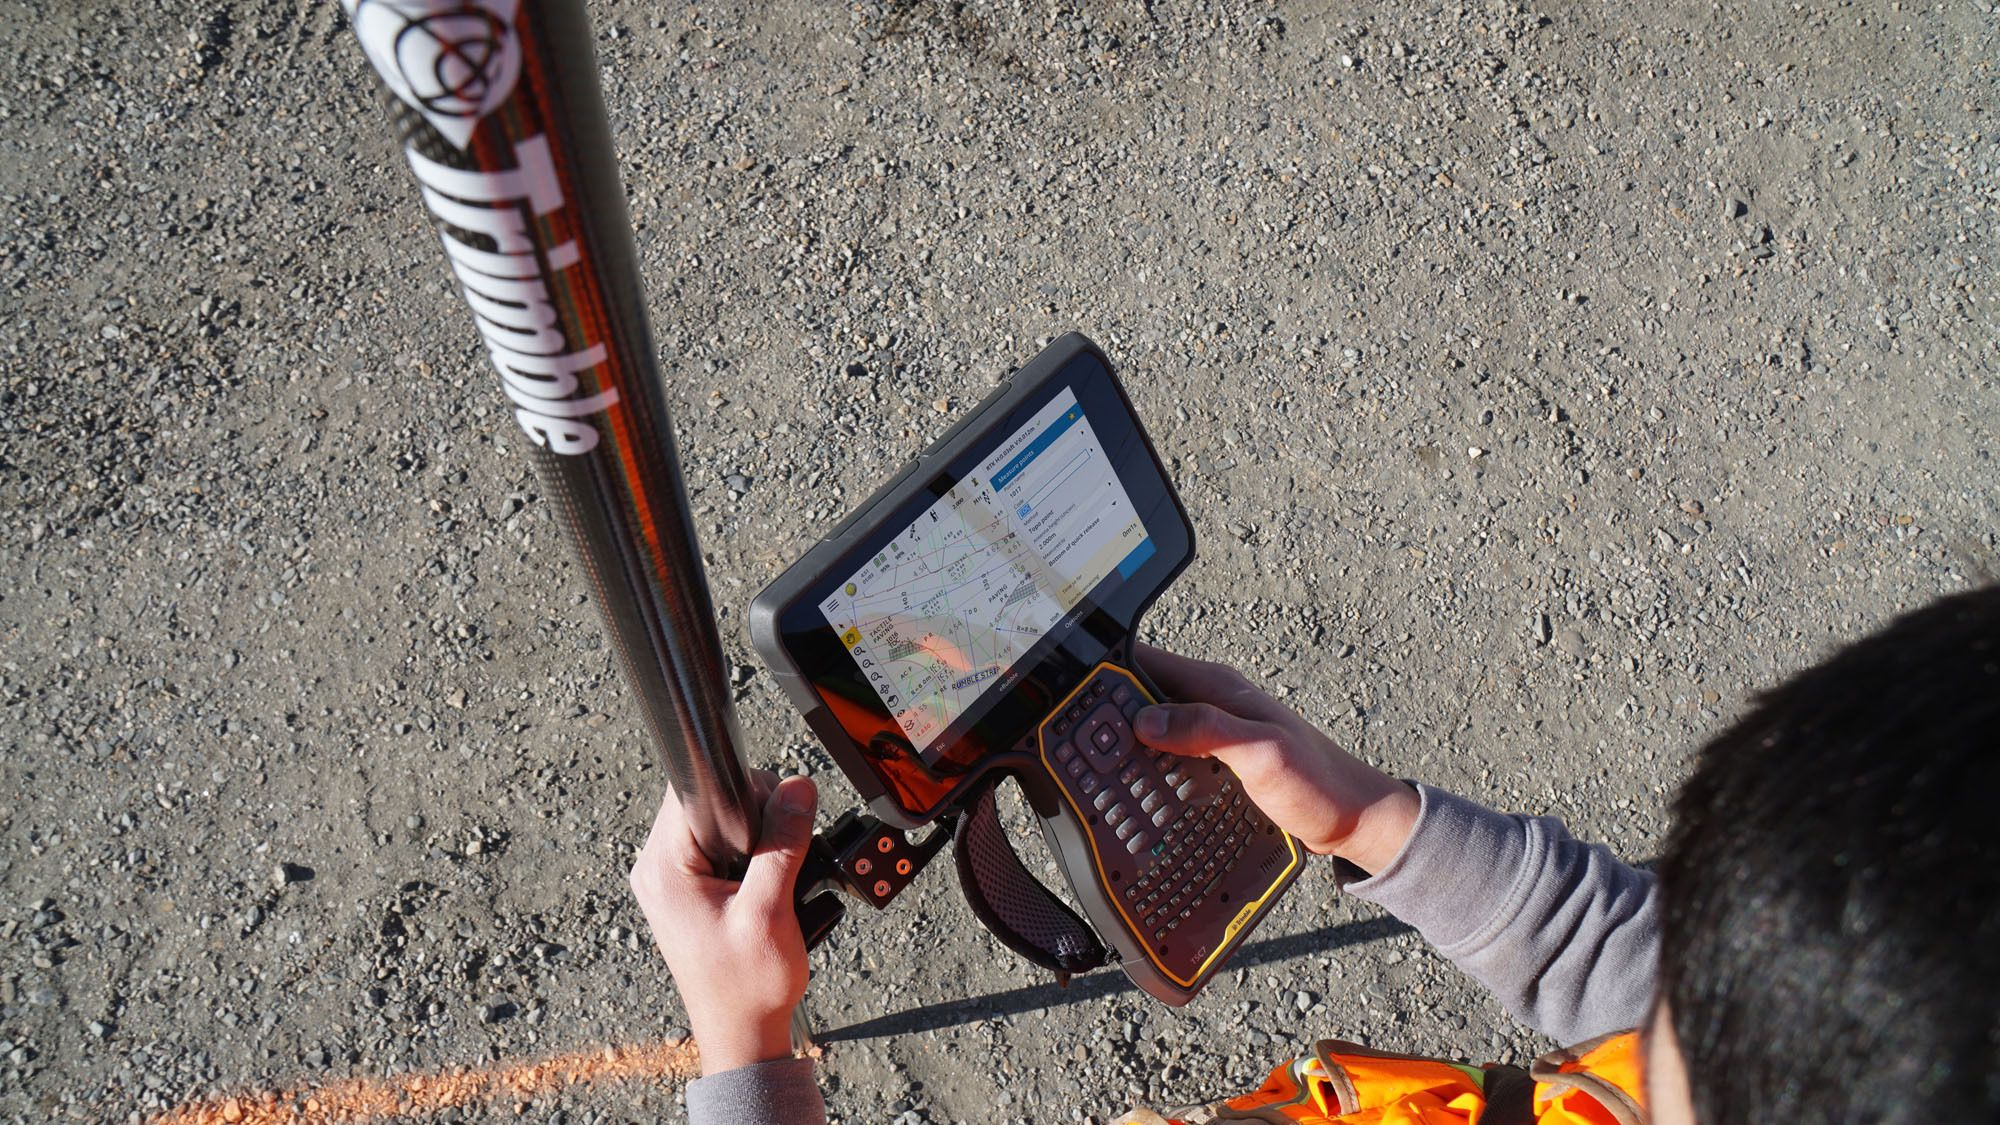 Trimble and Infotech to Streamline Inspection Measurement Workflows for Civil Infrastructure Projects